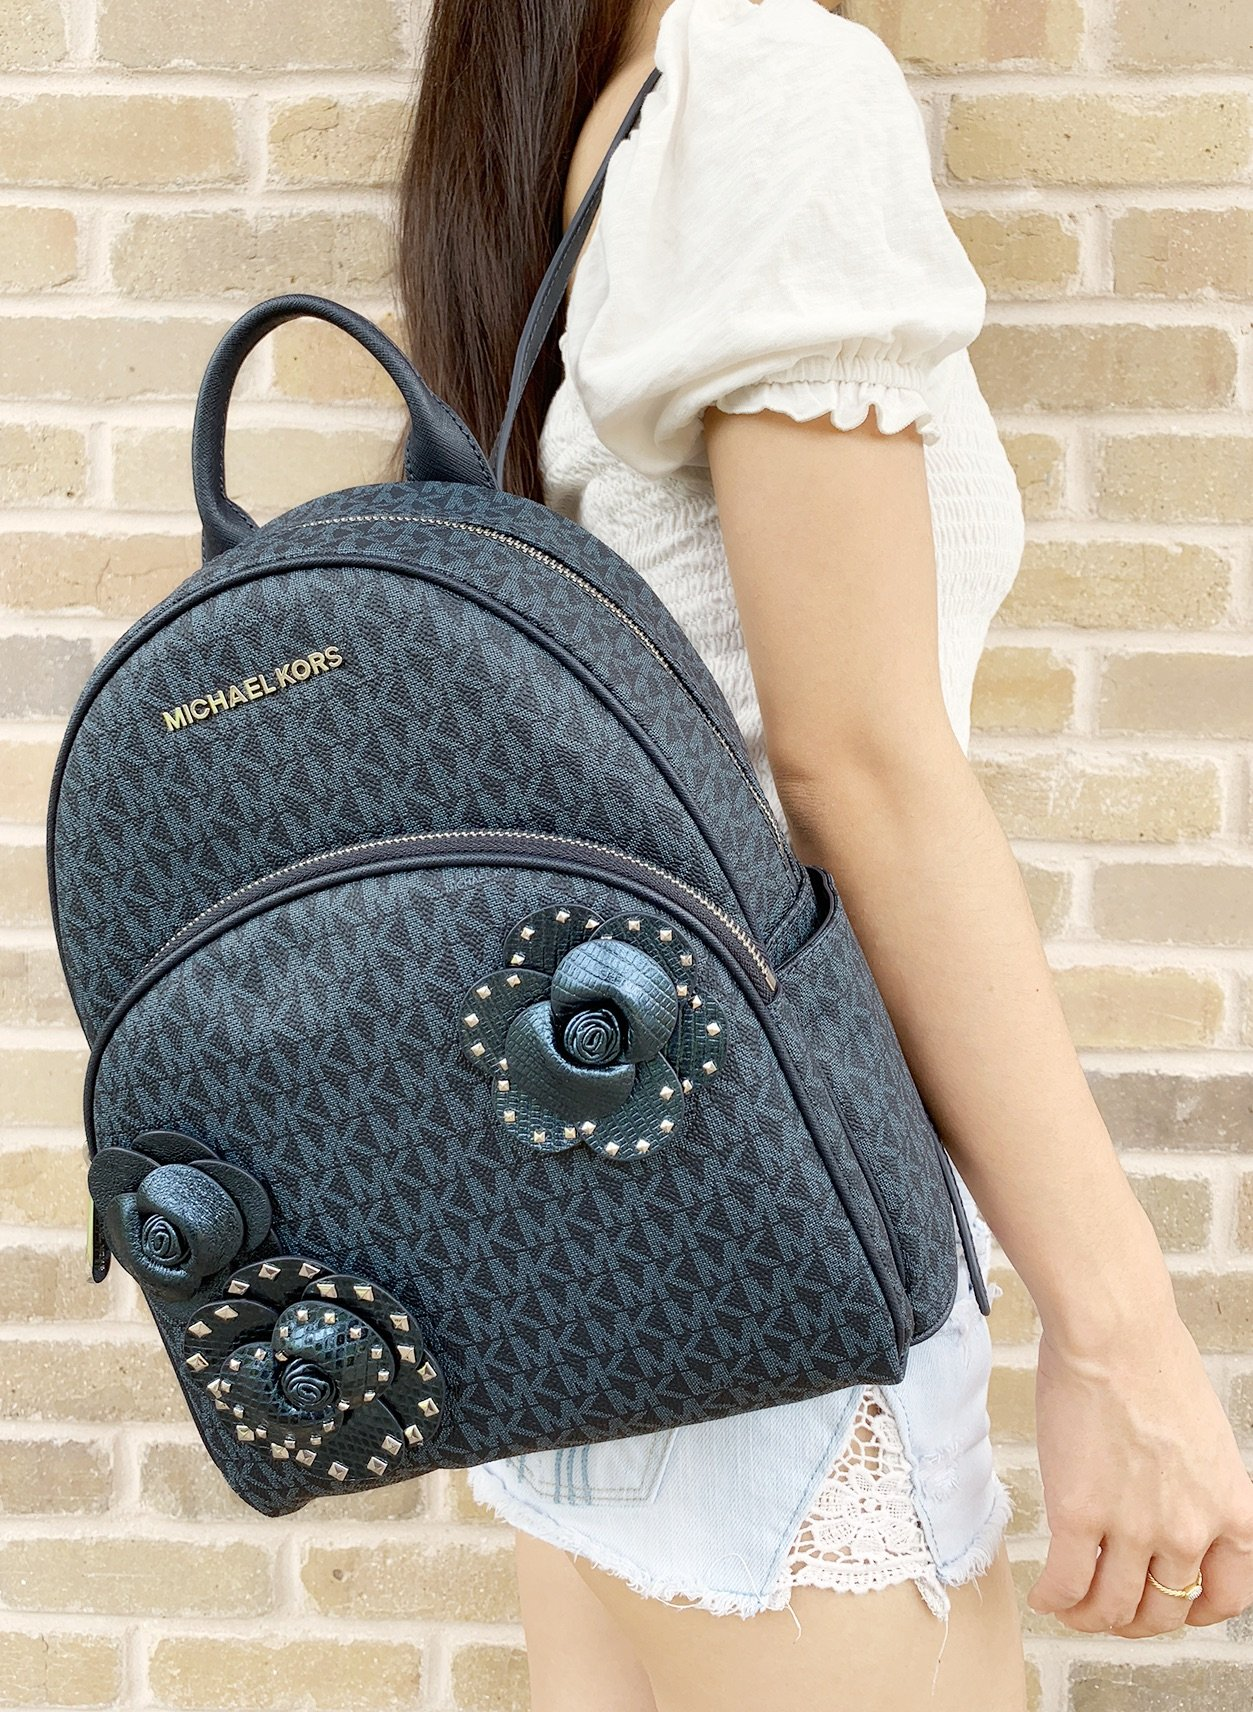 759c976fe4eaa8 Details about Michael Kors Abbey Medium Backpack Admiral Blue MK Signature  Flower School Bag